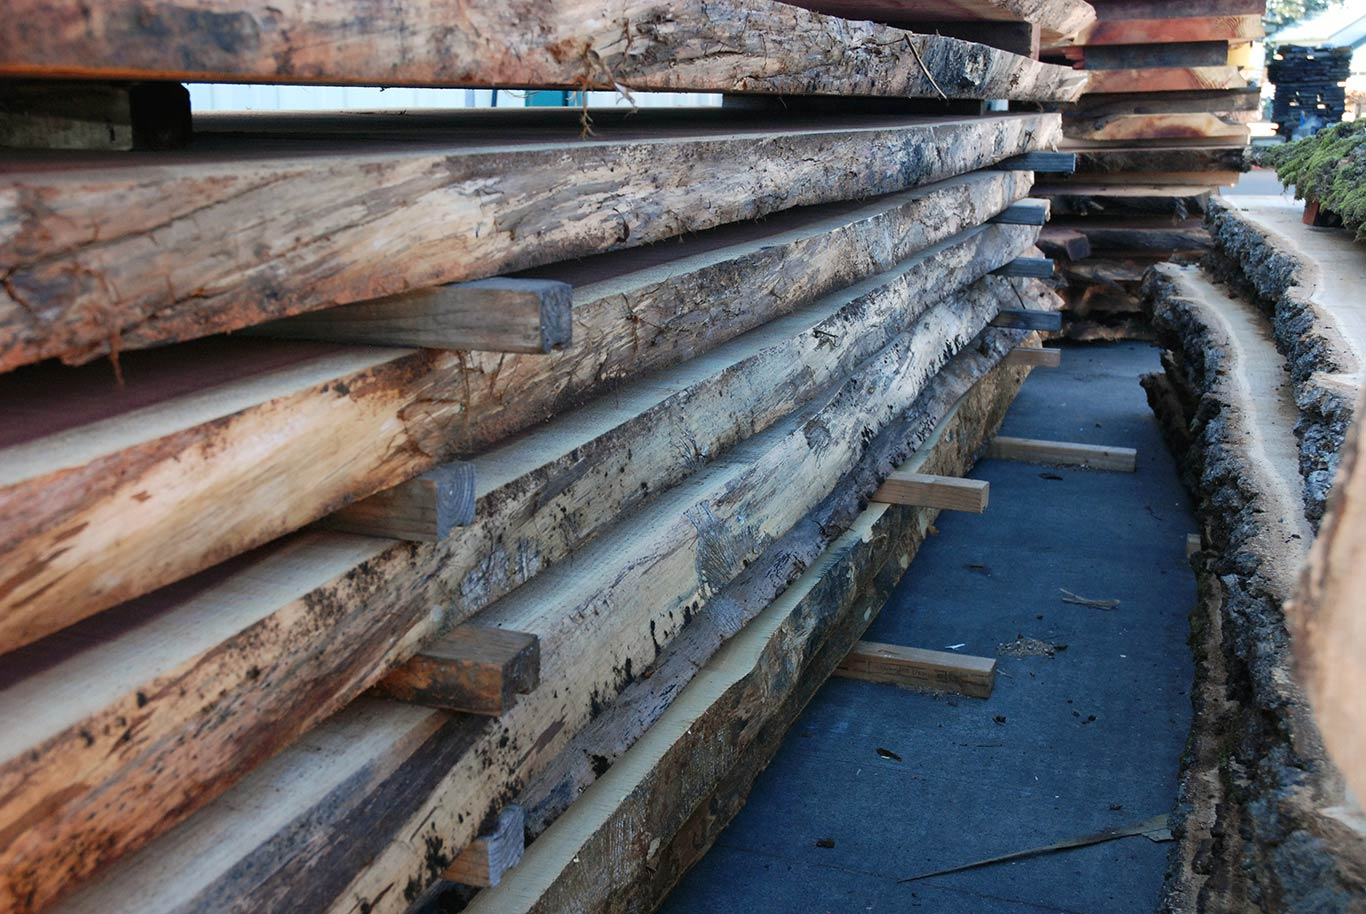 Live Edge Slabs at The Hardwood Centre in Corvallis and Albany, Oregon